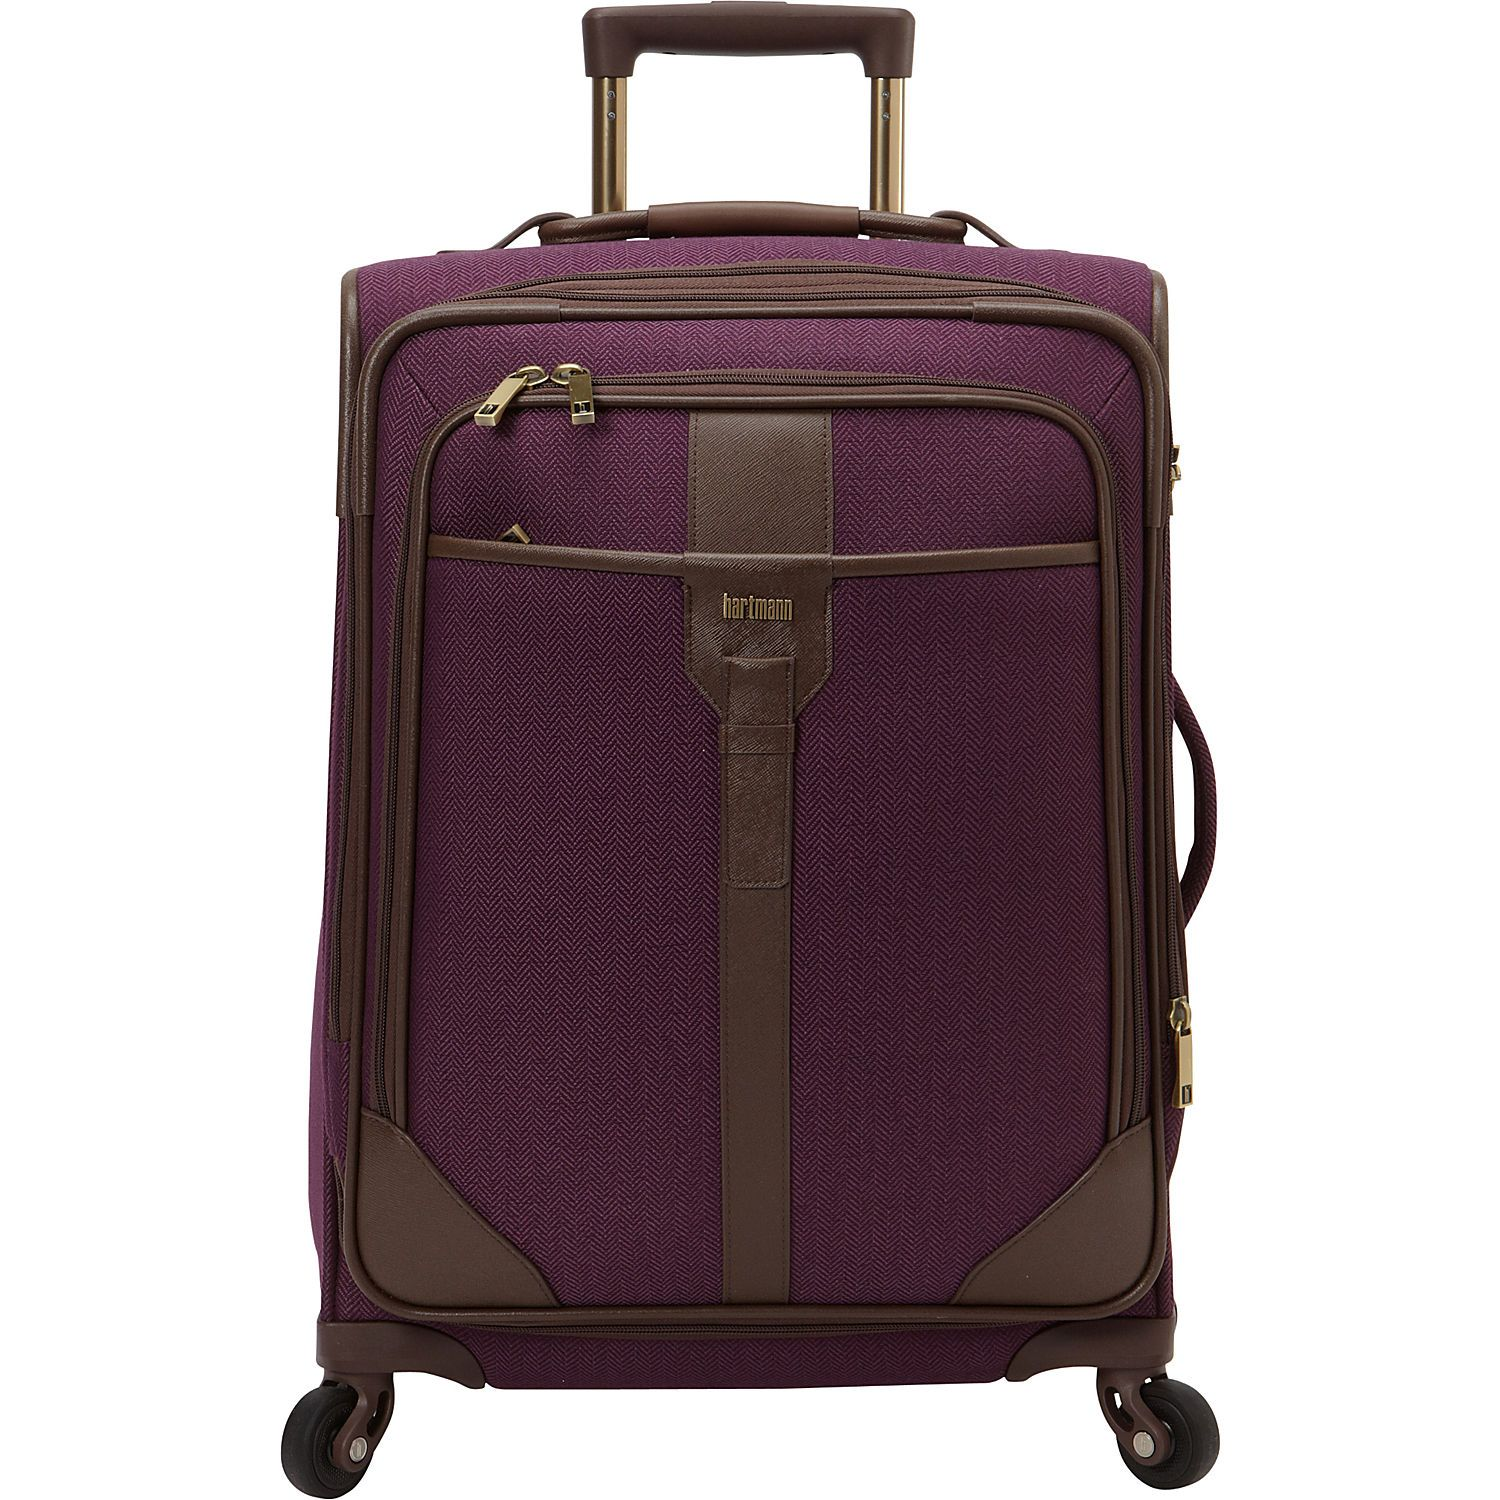 1a578db5ca09 Hartmann Luggage Herringbone Luxe Softside Carry On Expandable Spinner -  eBags.com